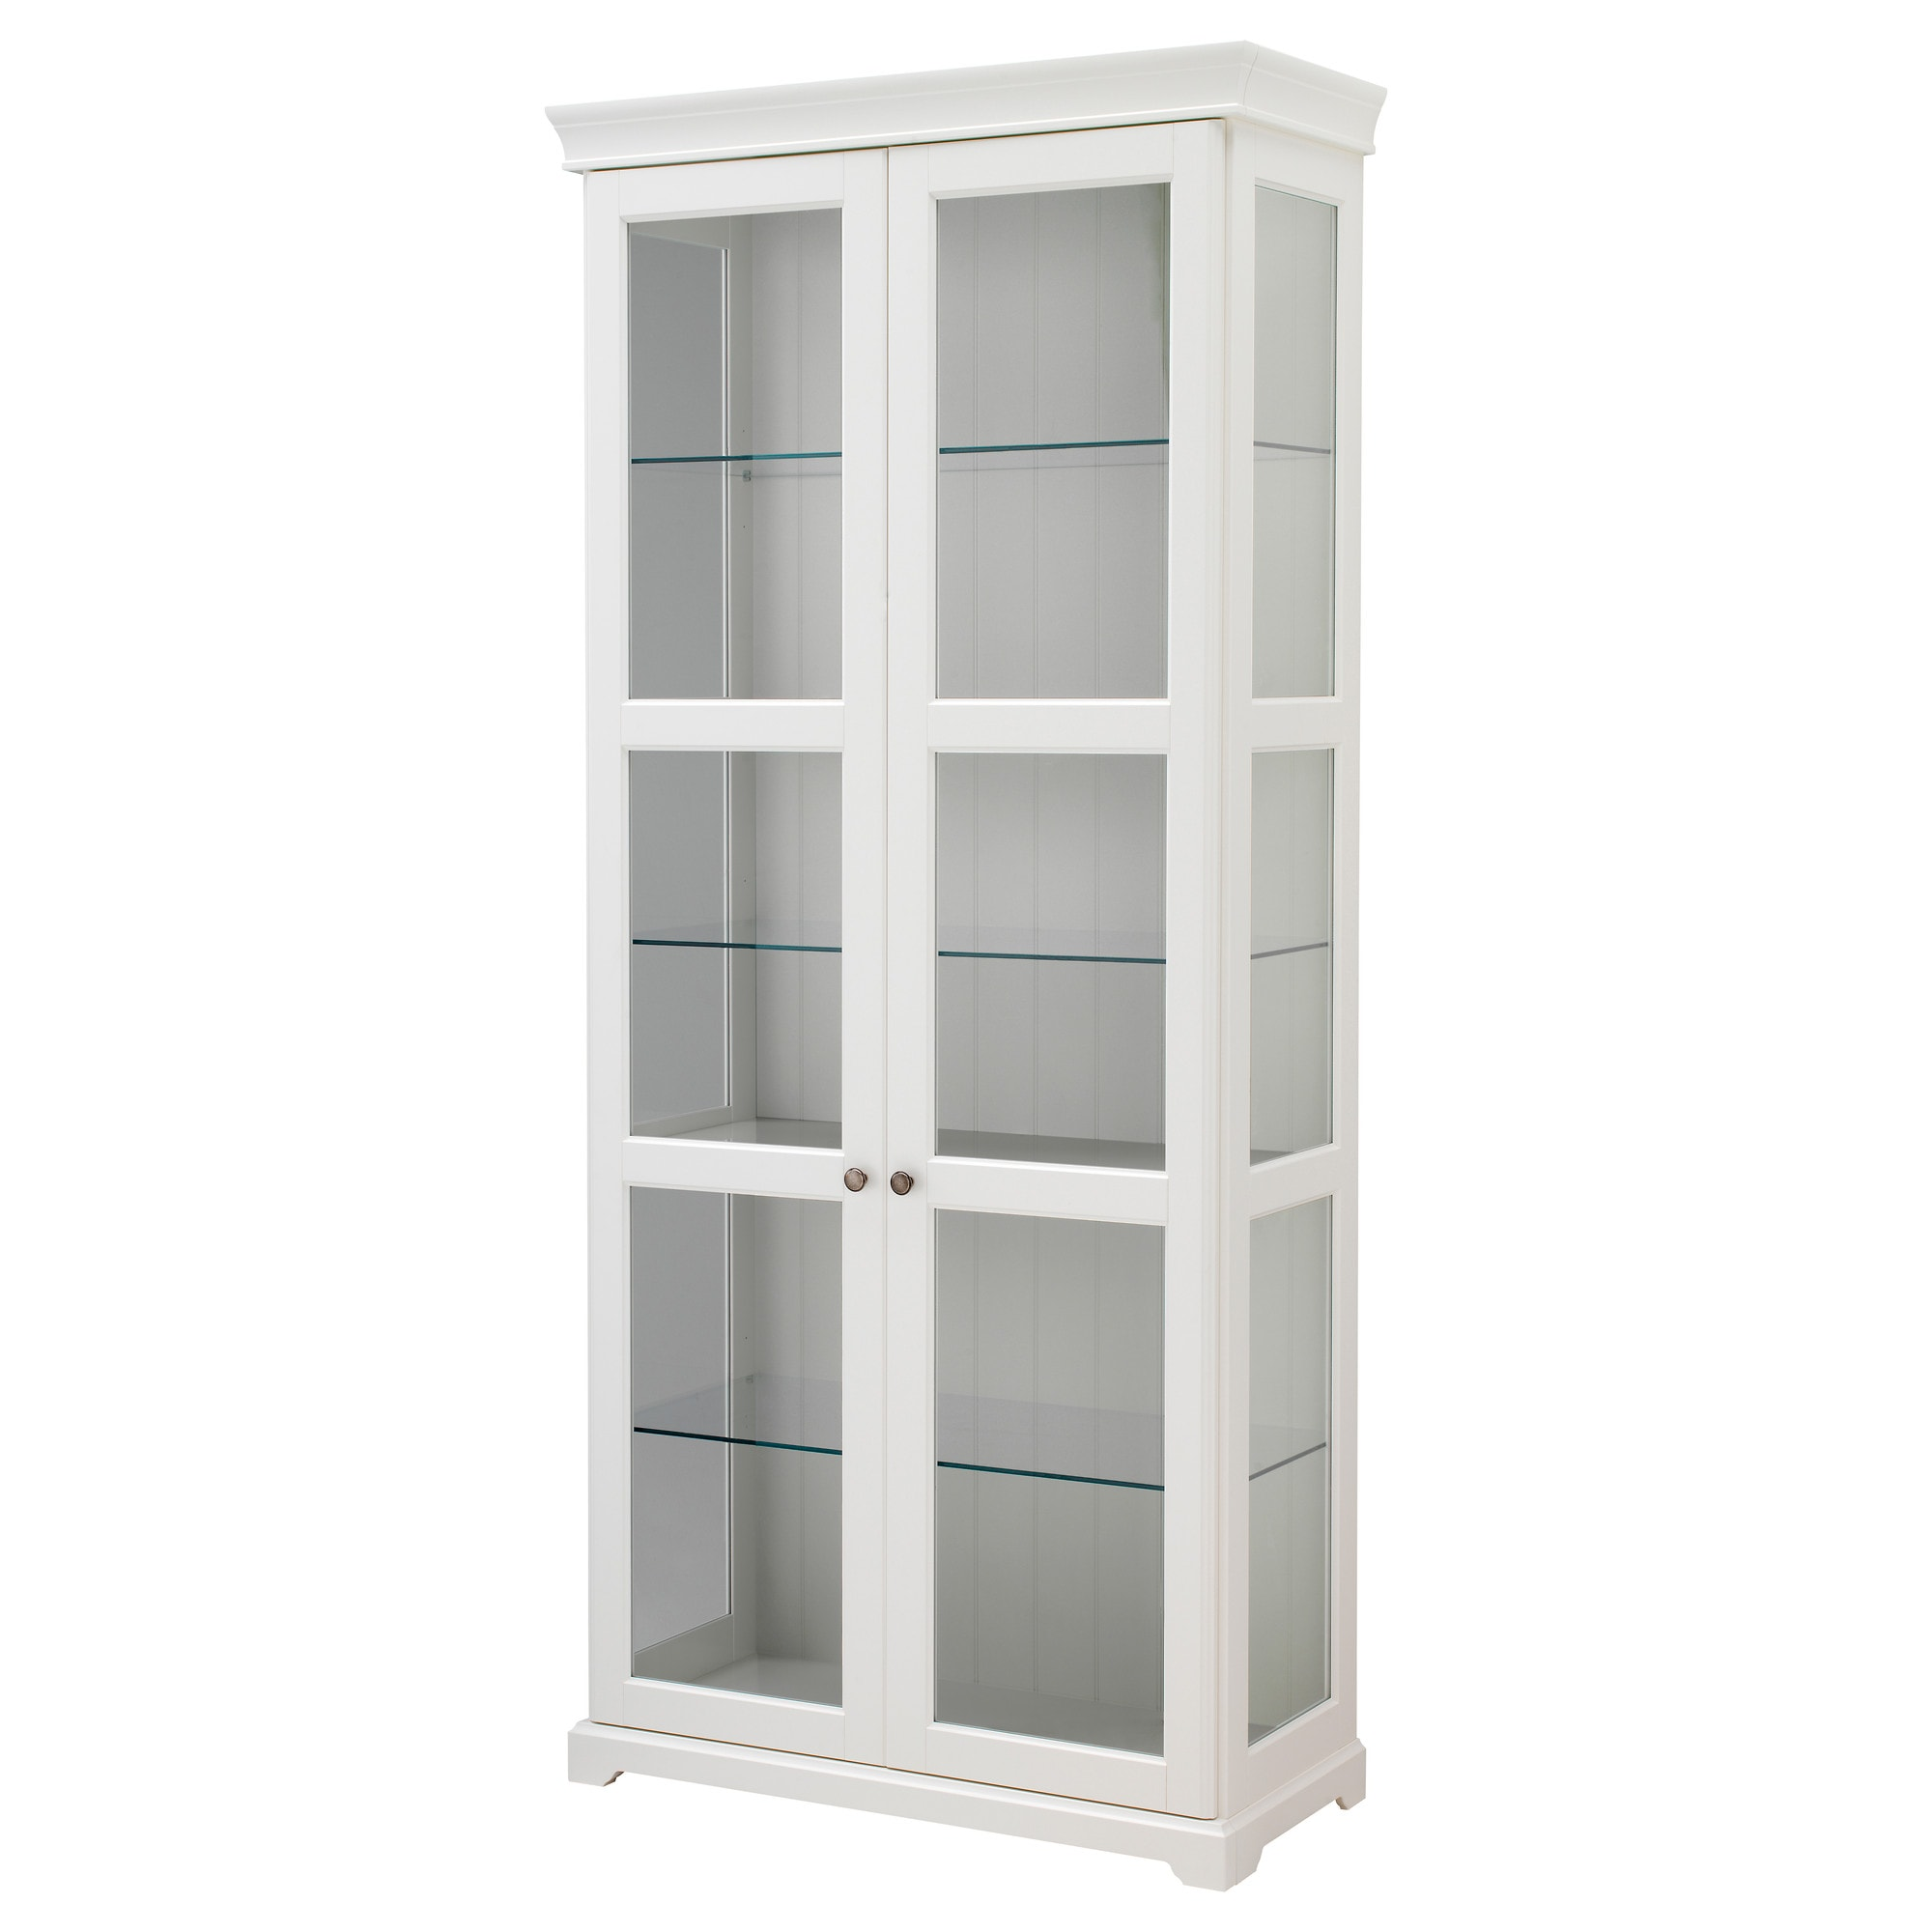 lorenz cabinets gloss cabinet uk display wow cupboard doors asp furniturefactor with white co by glass p high